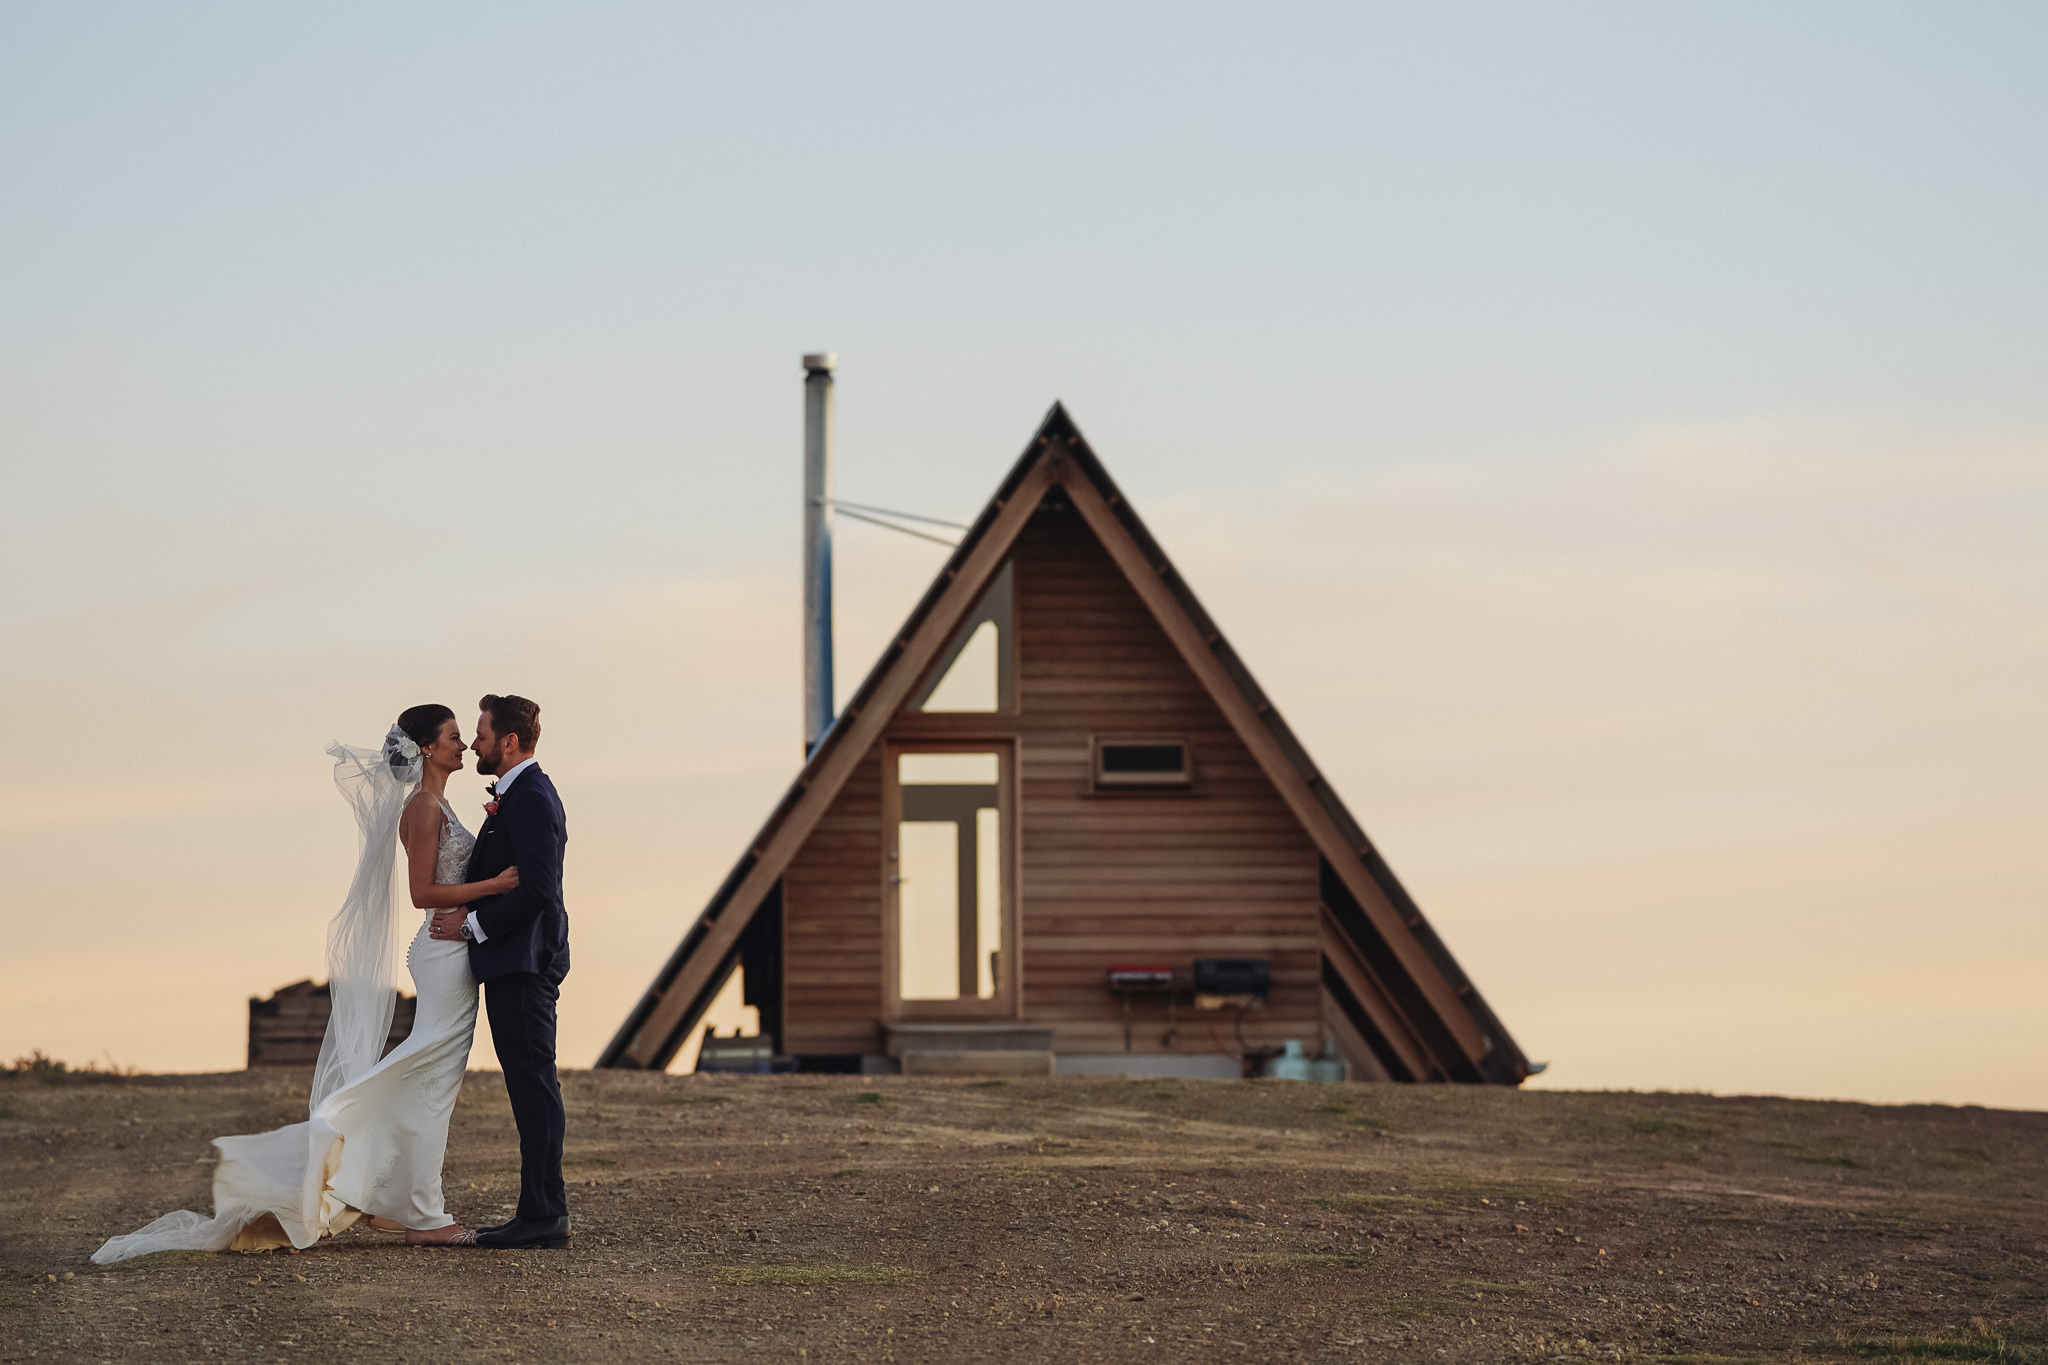 Nicole + James - Kimo Estate, Gundagai NSW